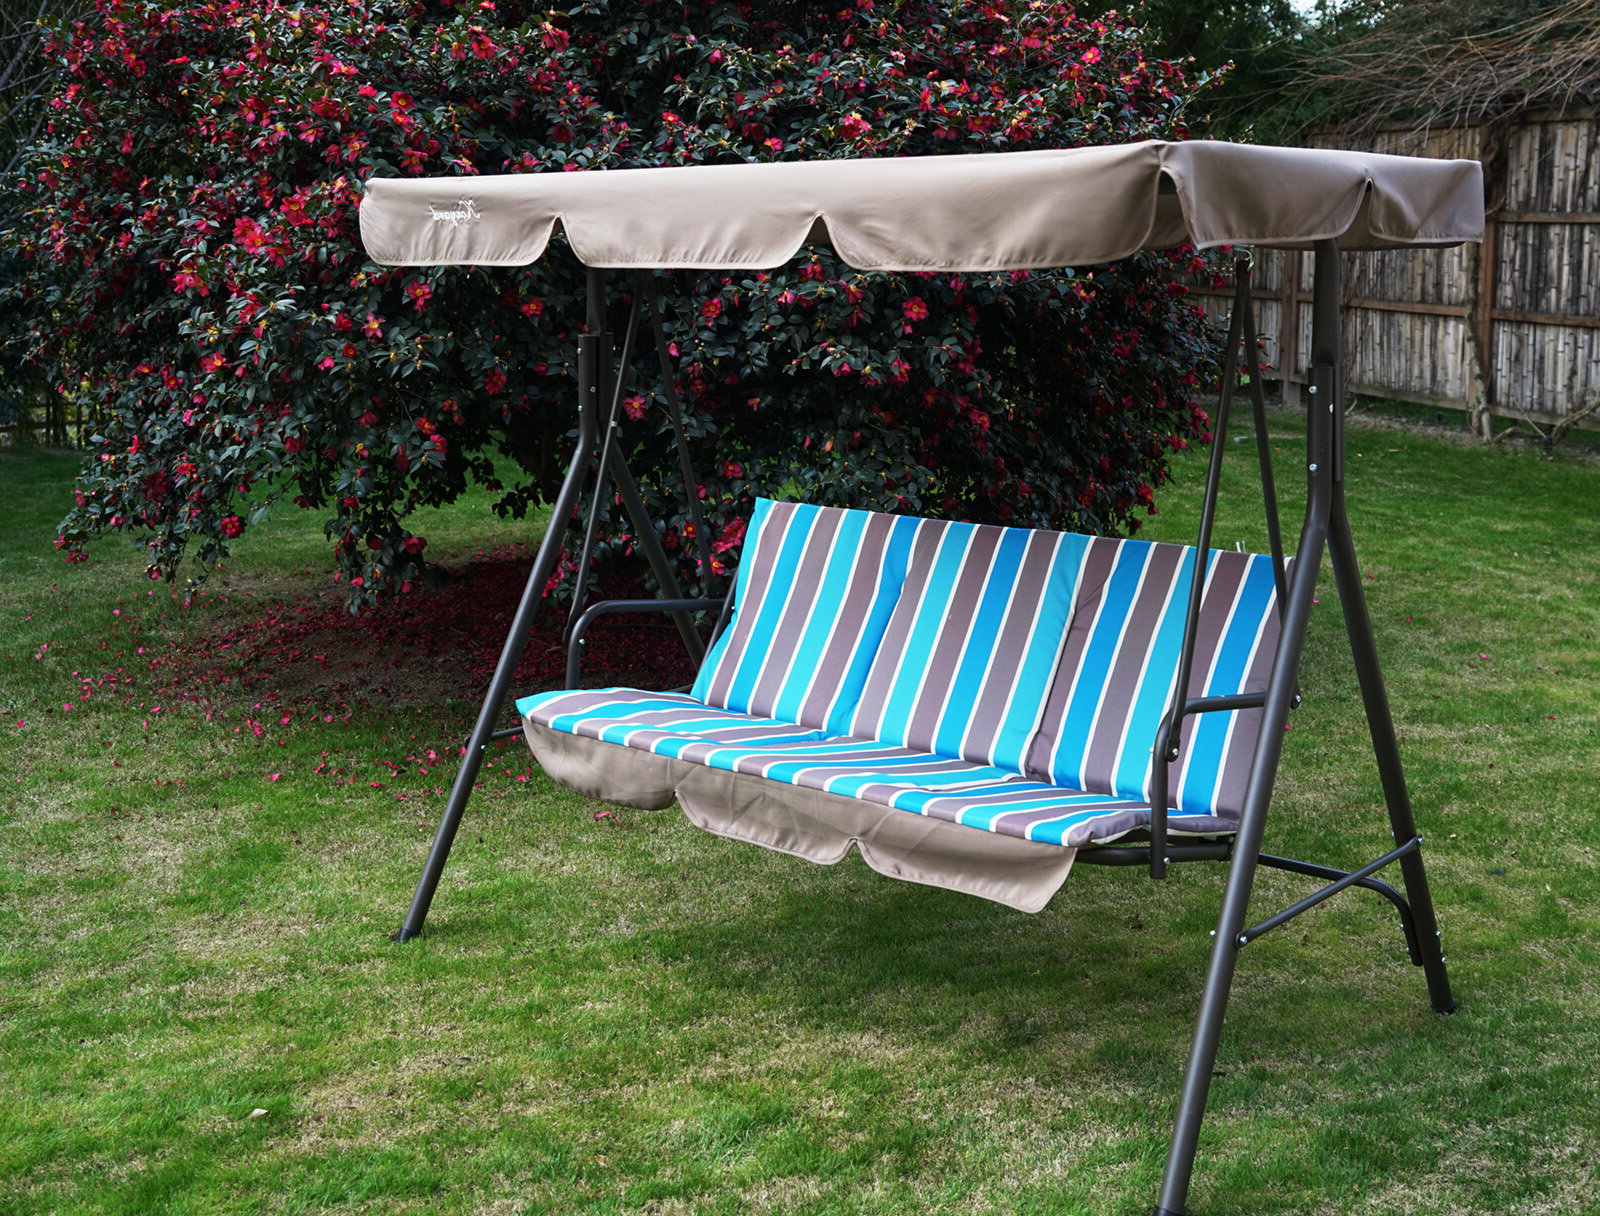 Trendy Outdoor Swing Glider Chairs With Powder Coated Steel Frame With Regard To Alicia Patio Swing Chair With 3 Comfortable Cushion Seats And Strong  Weather Resistant Powder Coated Steel Frame (Colour: Red Stripe) (Gallery 8 of 30)